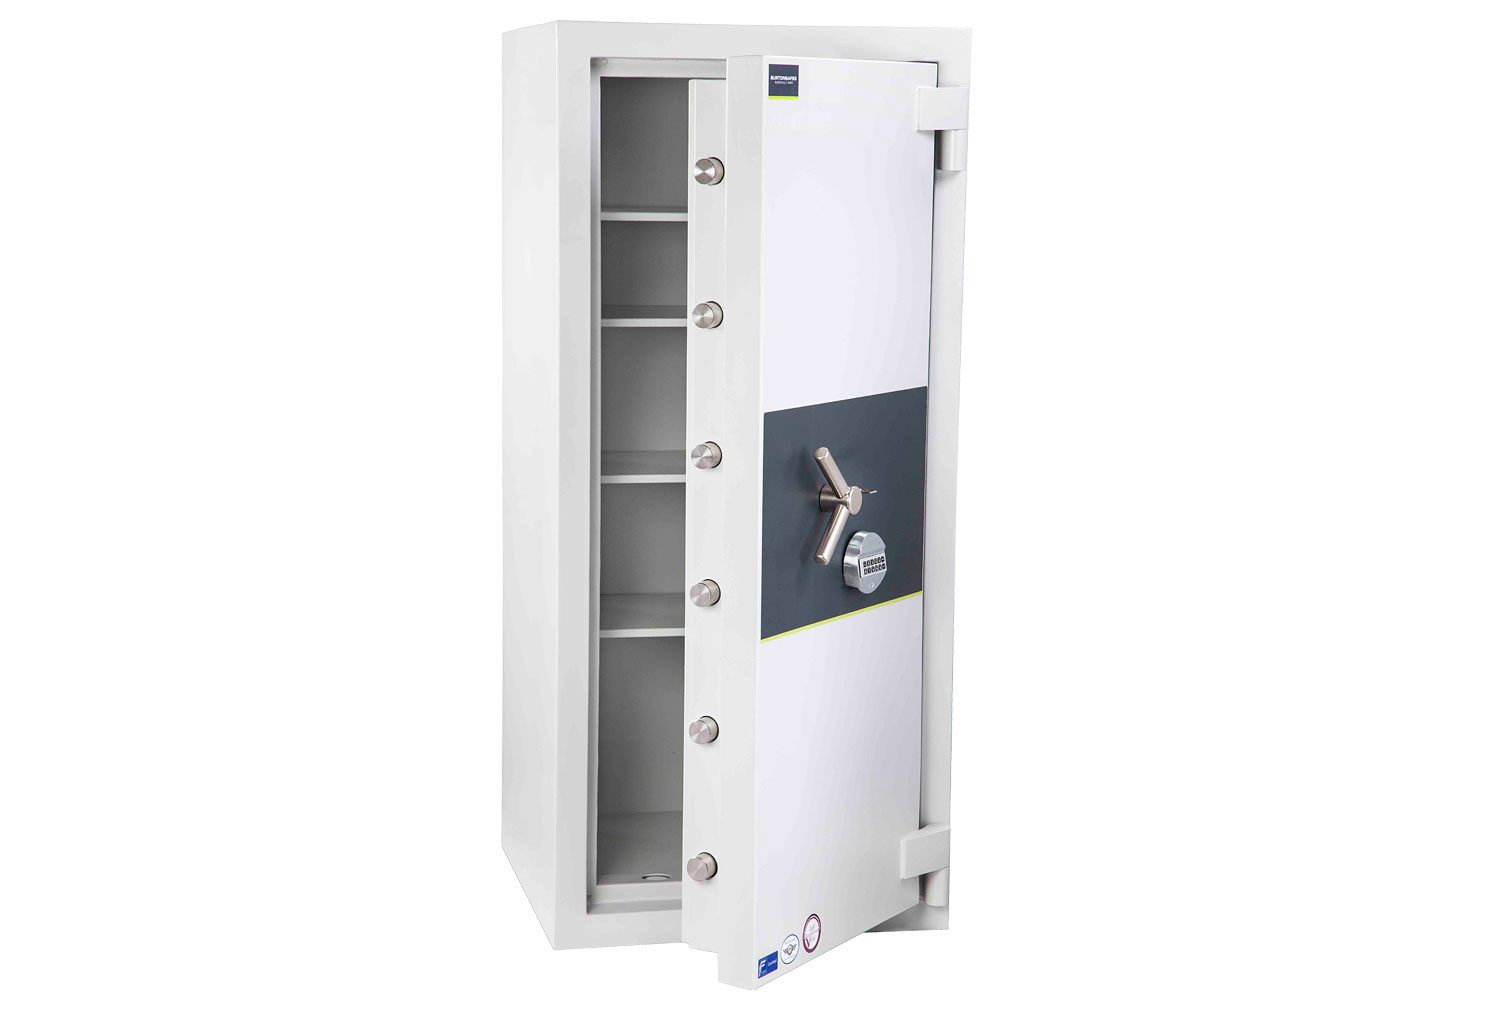 Burton Eurovault Aver Grade 5 Size 4 Safe With Dual Key And Electronic Lock (320ltrs)